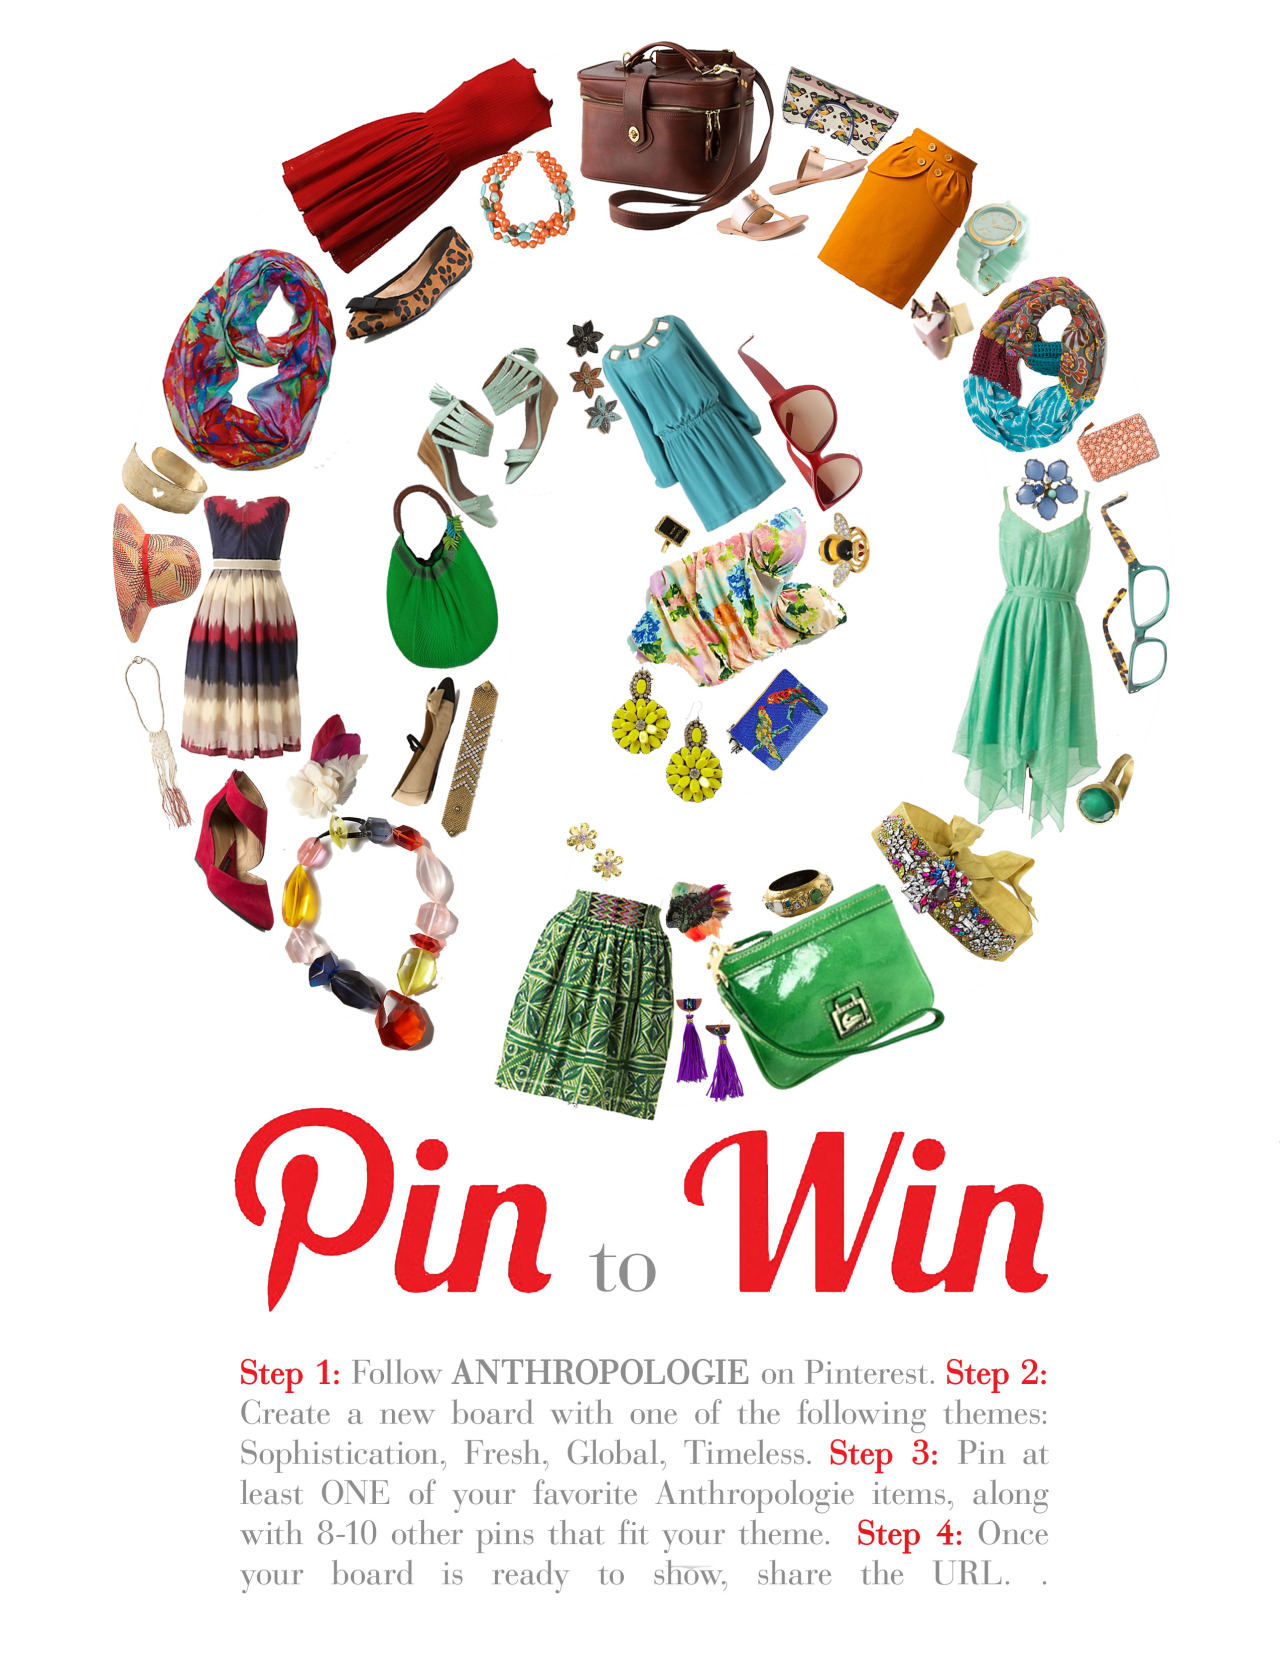 A mock-up for a Pinterest challenge for Anthropologie for a project at SCAD. Ultimately decided to go in a different direction (you'll see next week!), but I spent way too much time on this layout to not share it.